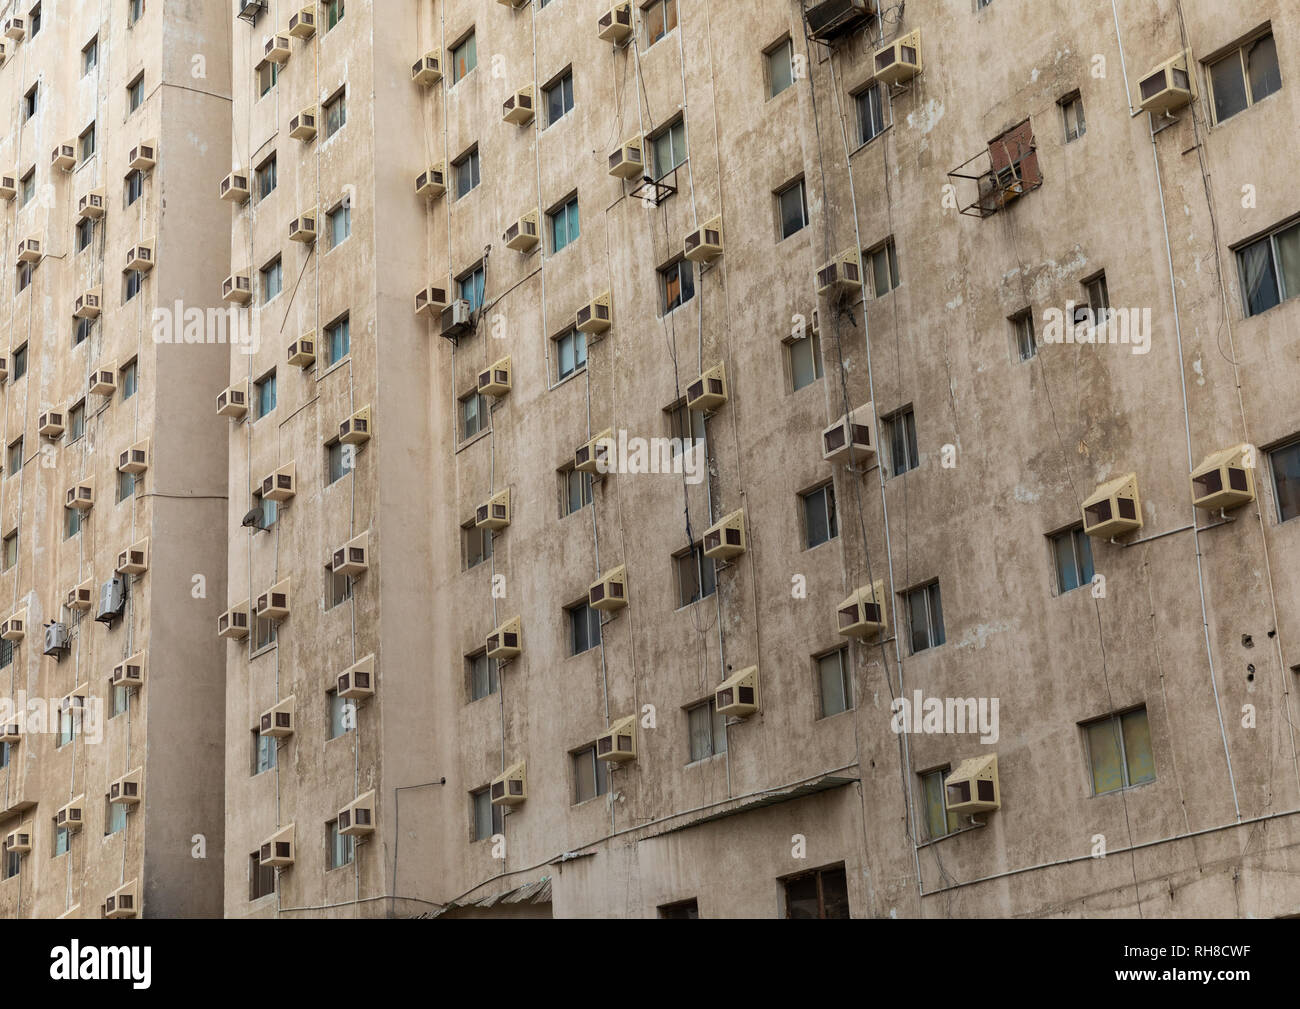 Modern building with many air conditioners, Mecca province, Jeddah, Saudi Arabia Stock Photo